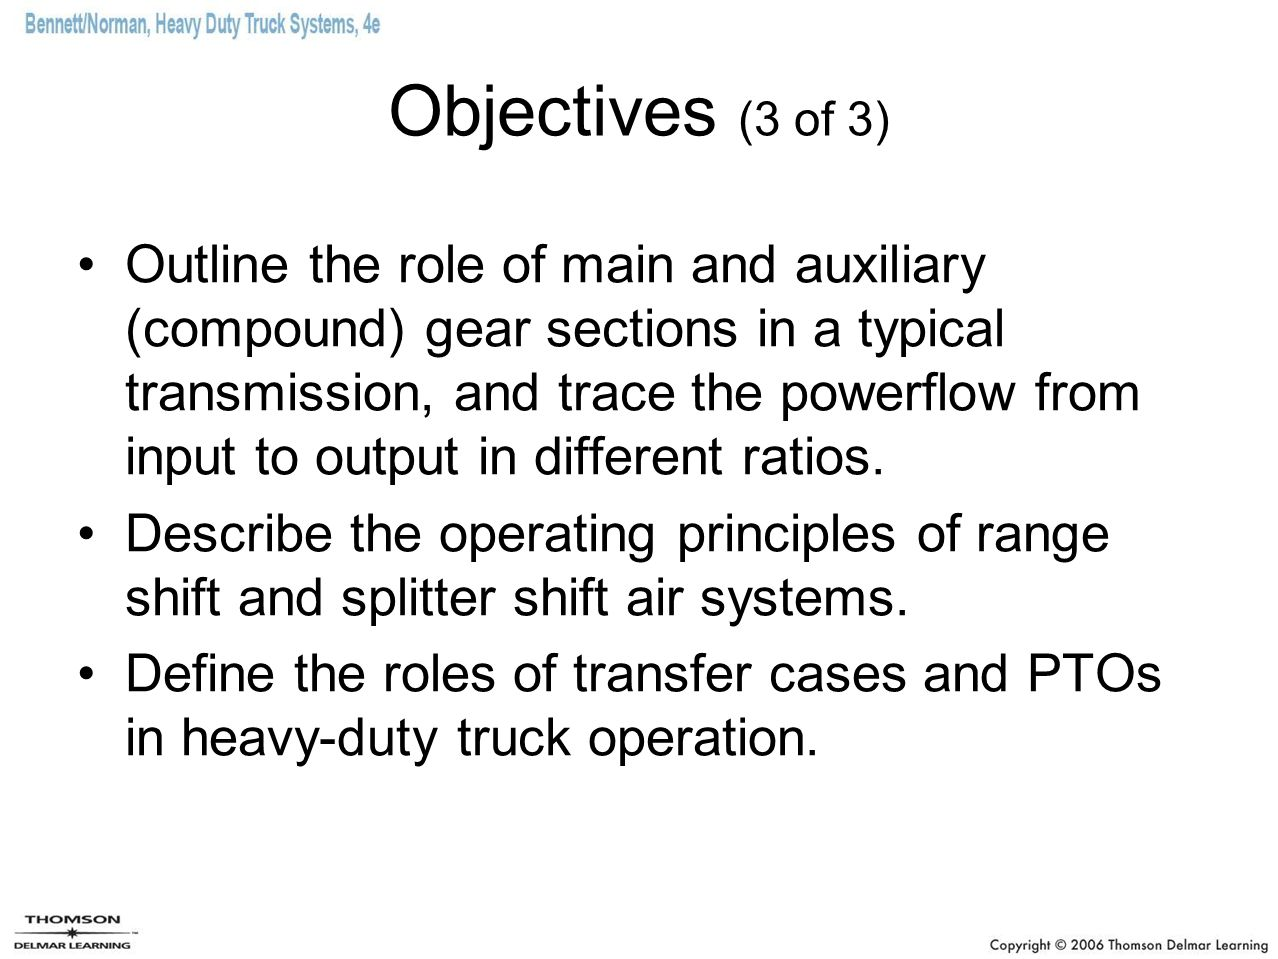 Objectives (3 of 3)